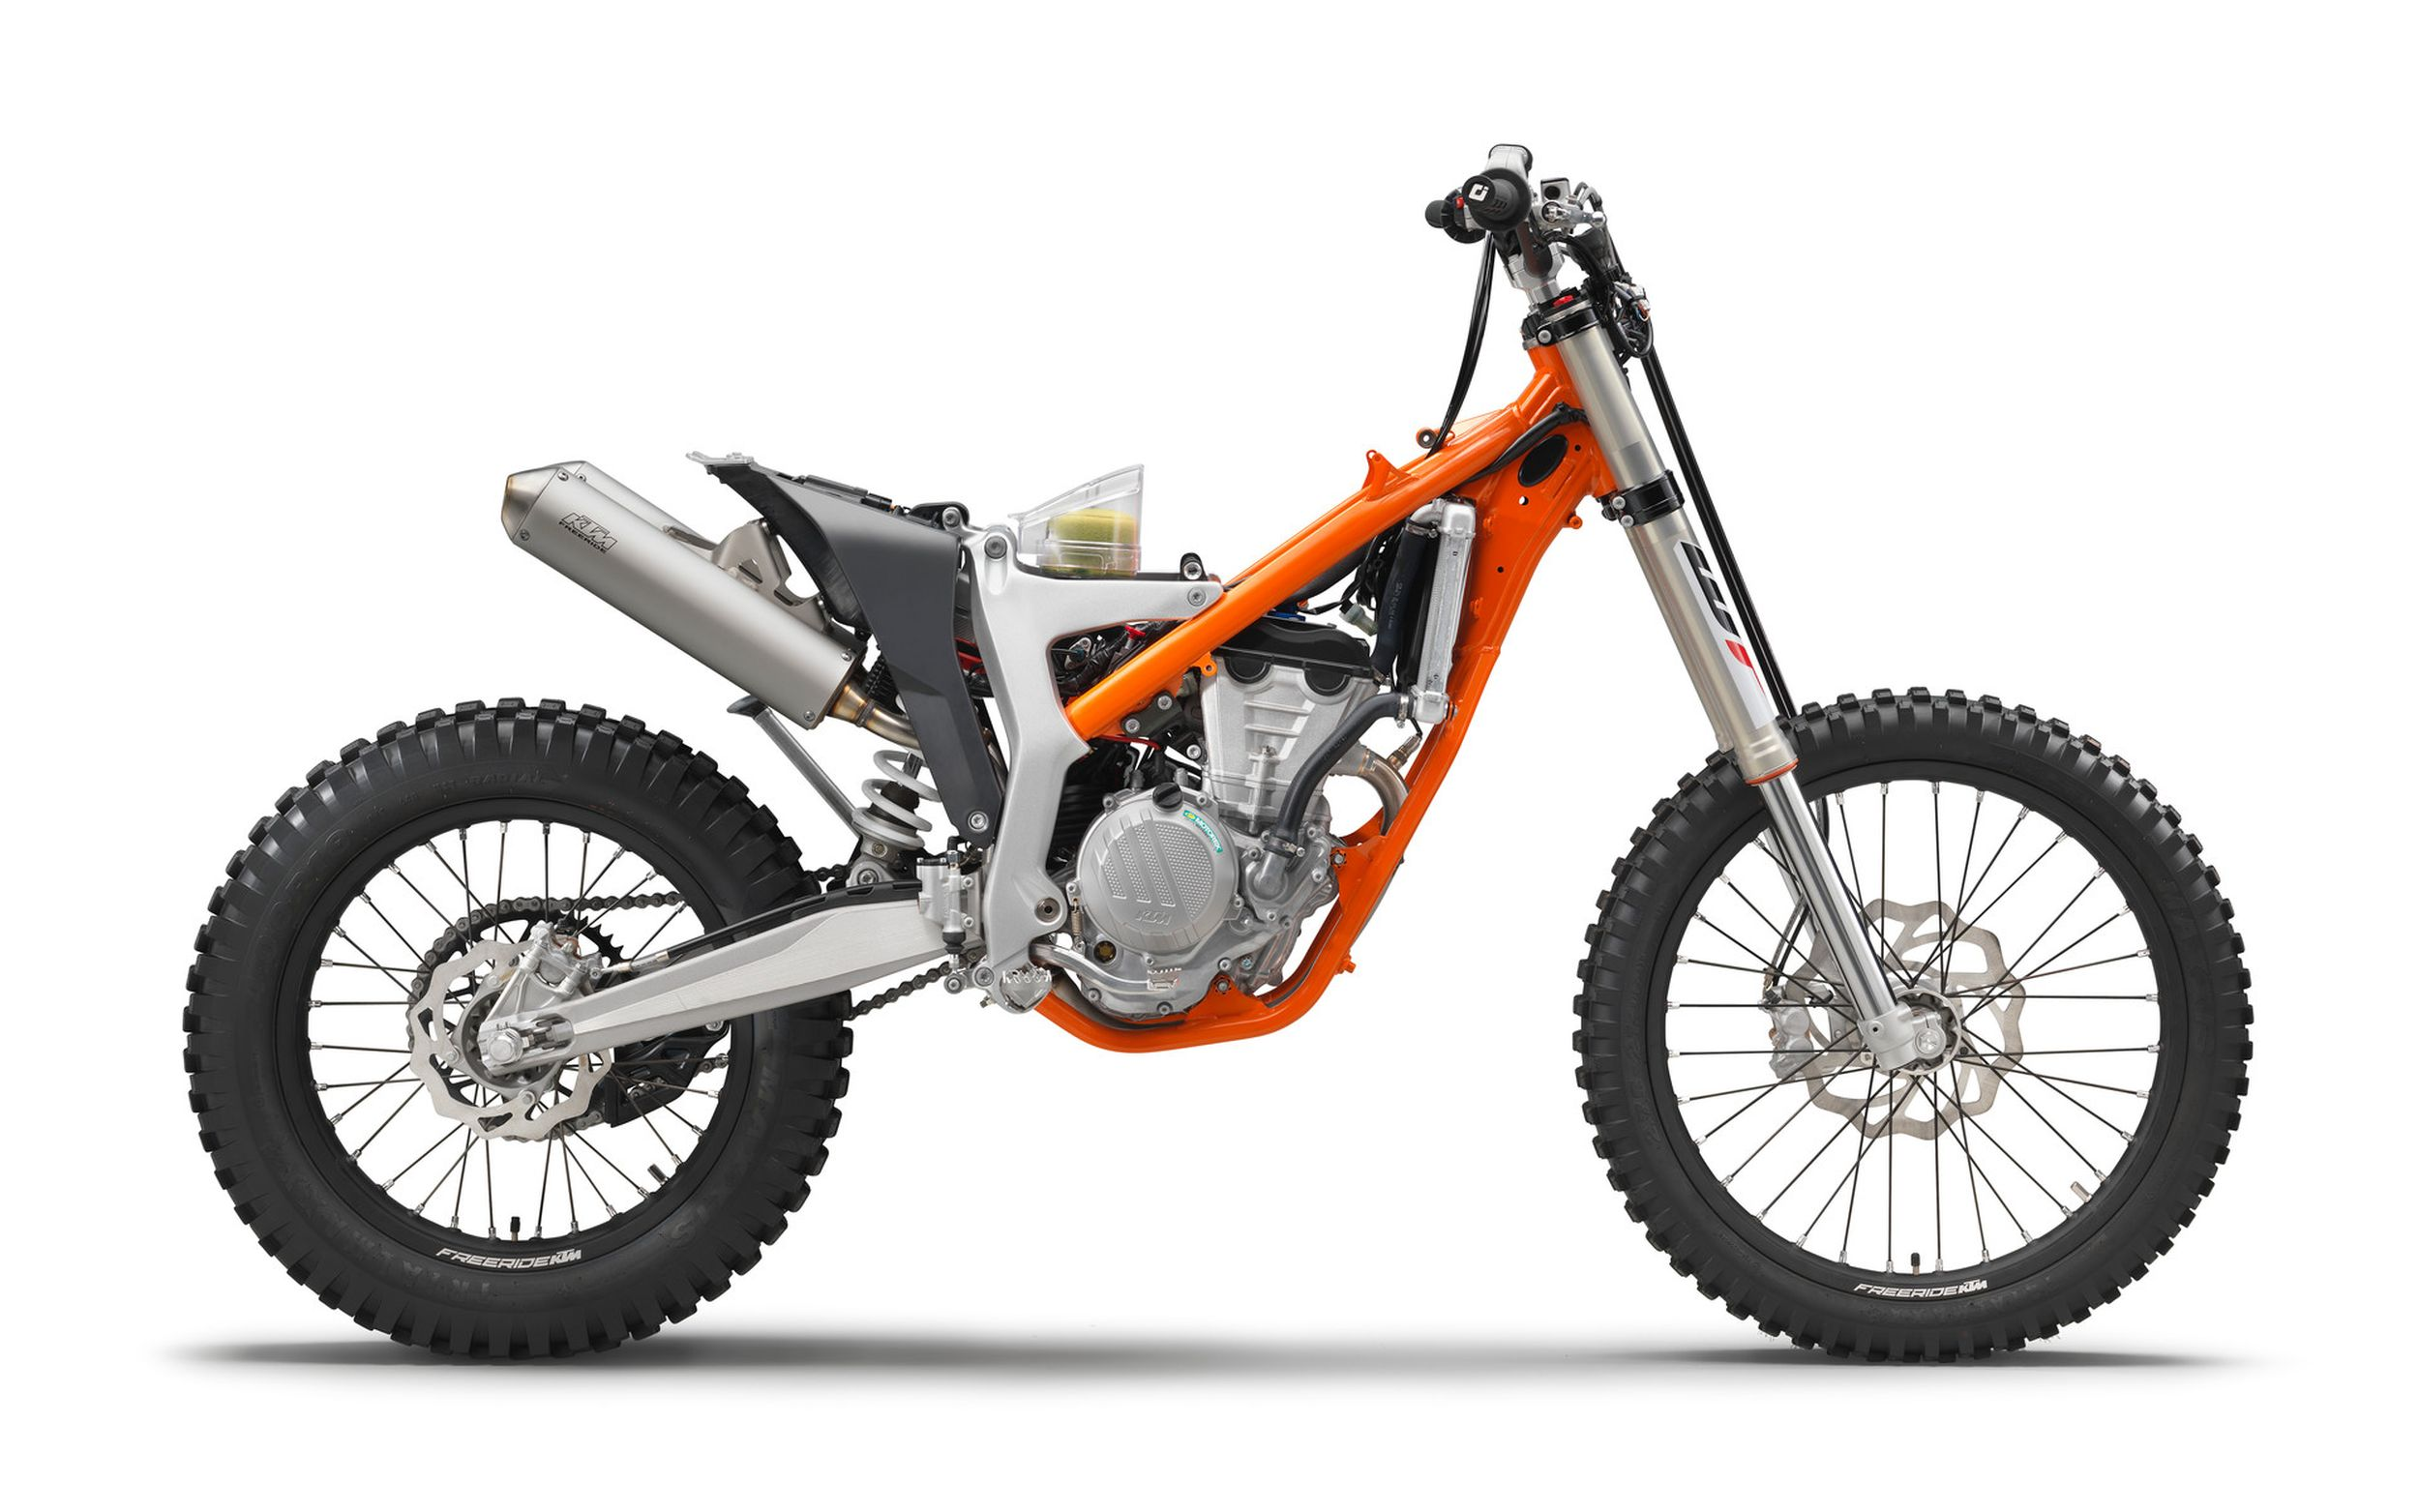 motorrad occasion ktm freeride 250 f kaufen. Black Bedroom Furniture Sets. Home Design Ideas